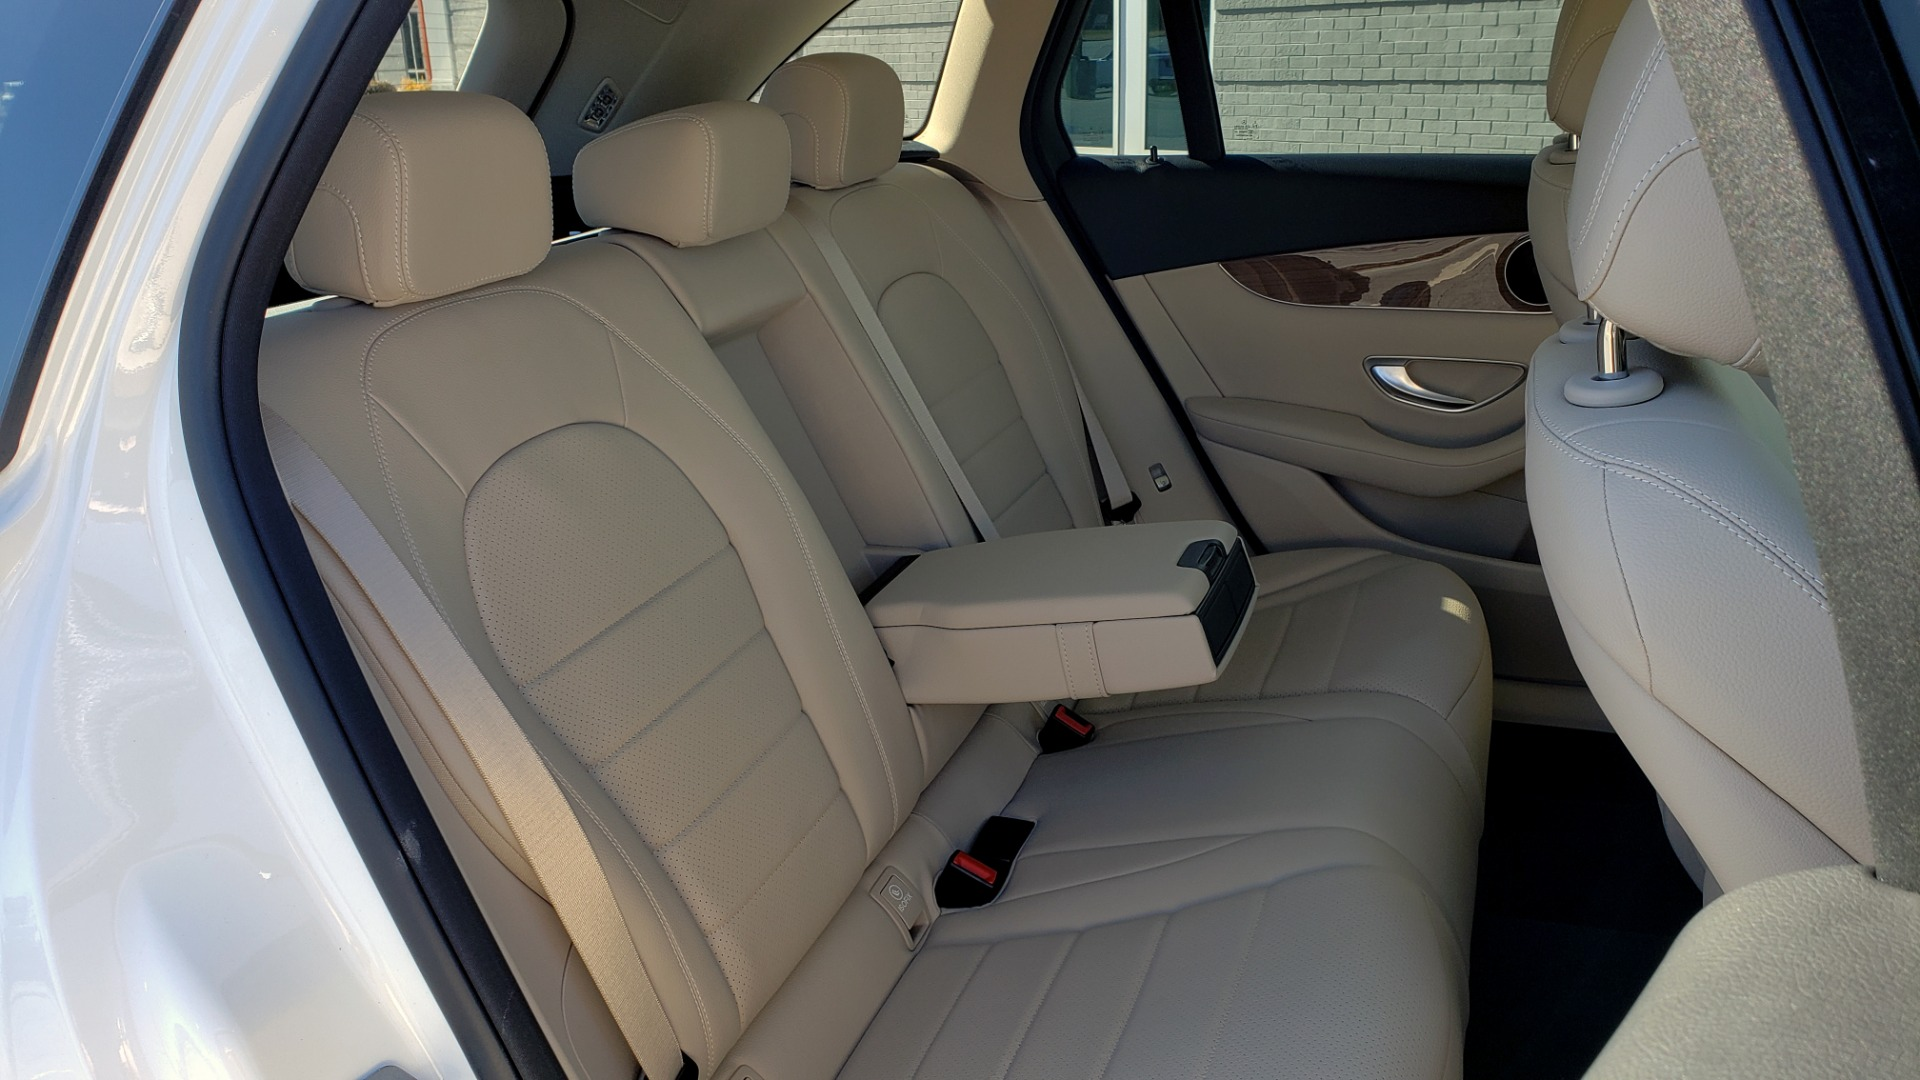 Used 2018 Mercedes-Benz GLC 300 4MATIC / PREM PKG / NAV / SUNROOF / REARVIEW for sale $36,995 at Formula Imports in Charlotte NC 28227 76